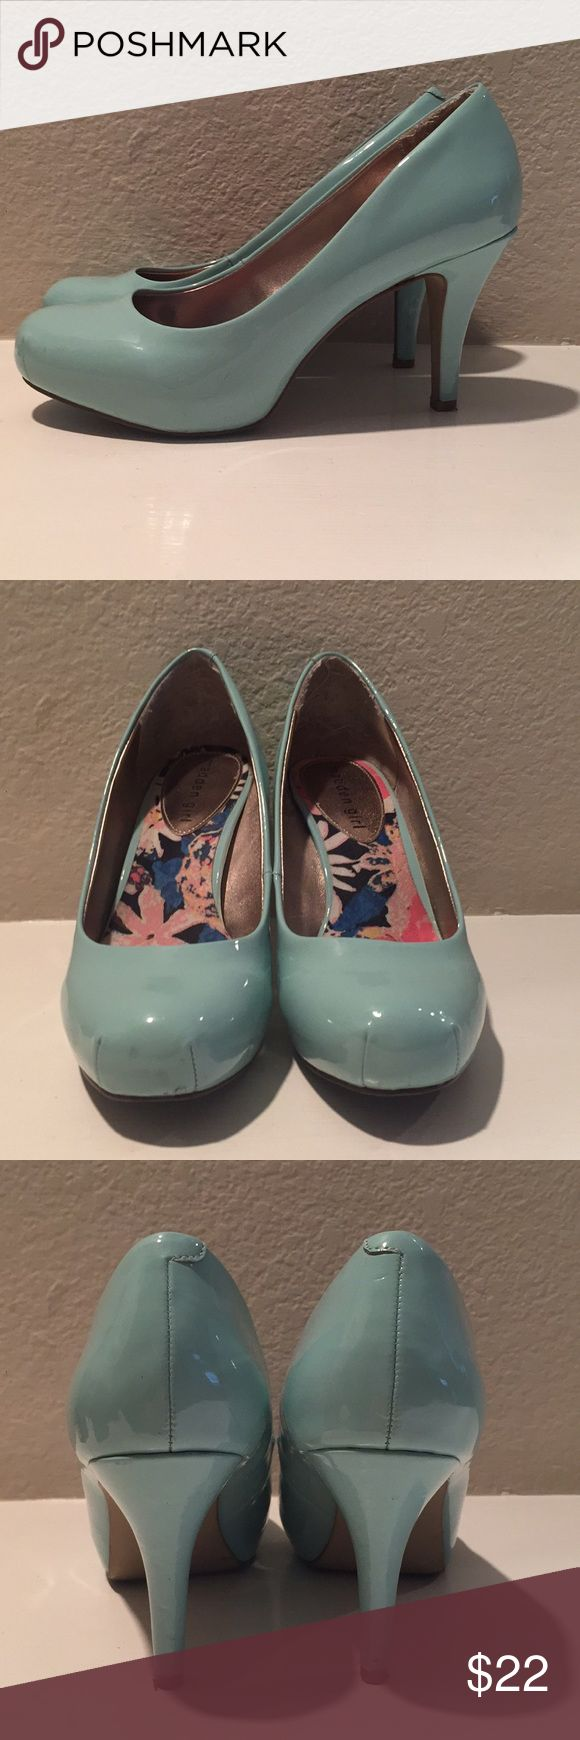 Steve Madden Mint Pumps Approximately 2.5 inch heels. In good condition, minor signs of use, but no damage. Steve Madden Shoes Heels